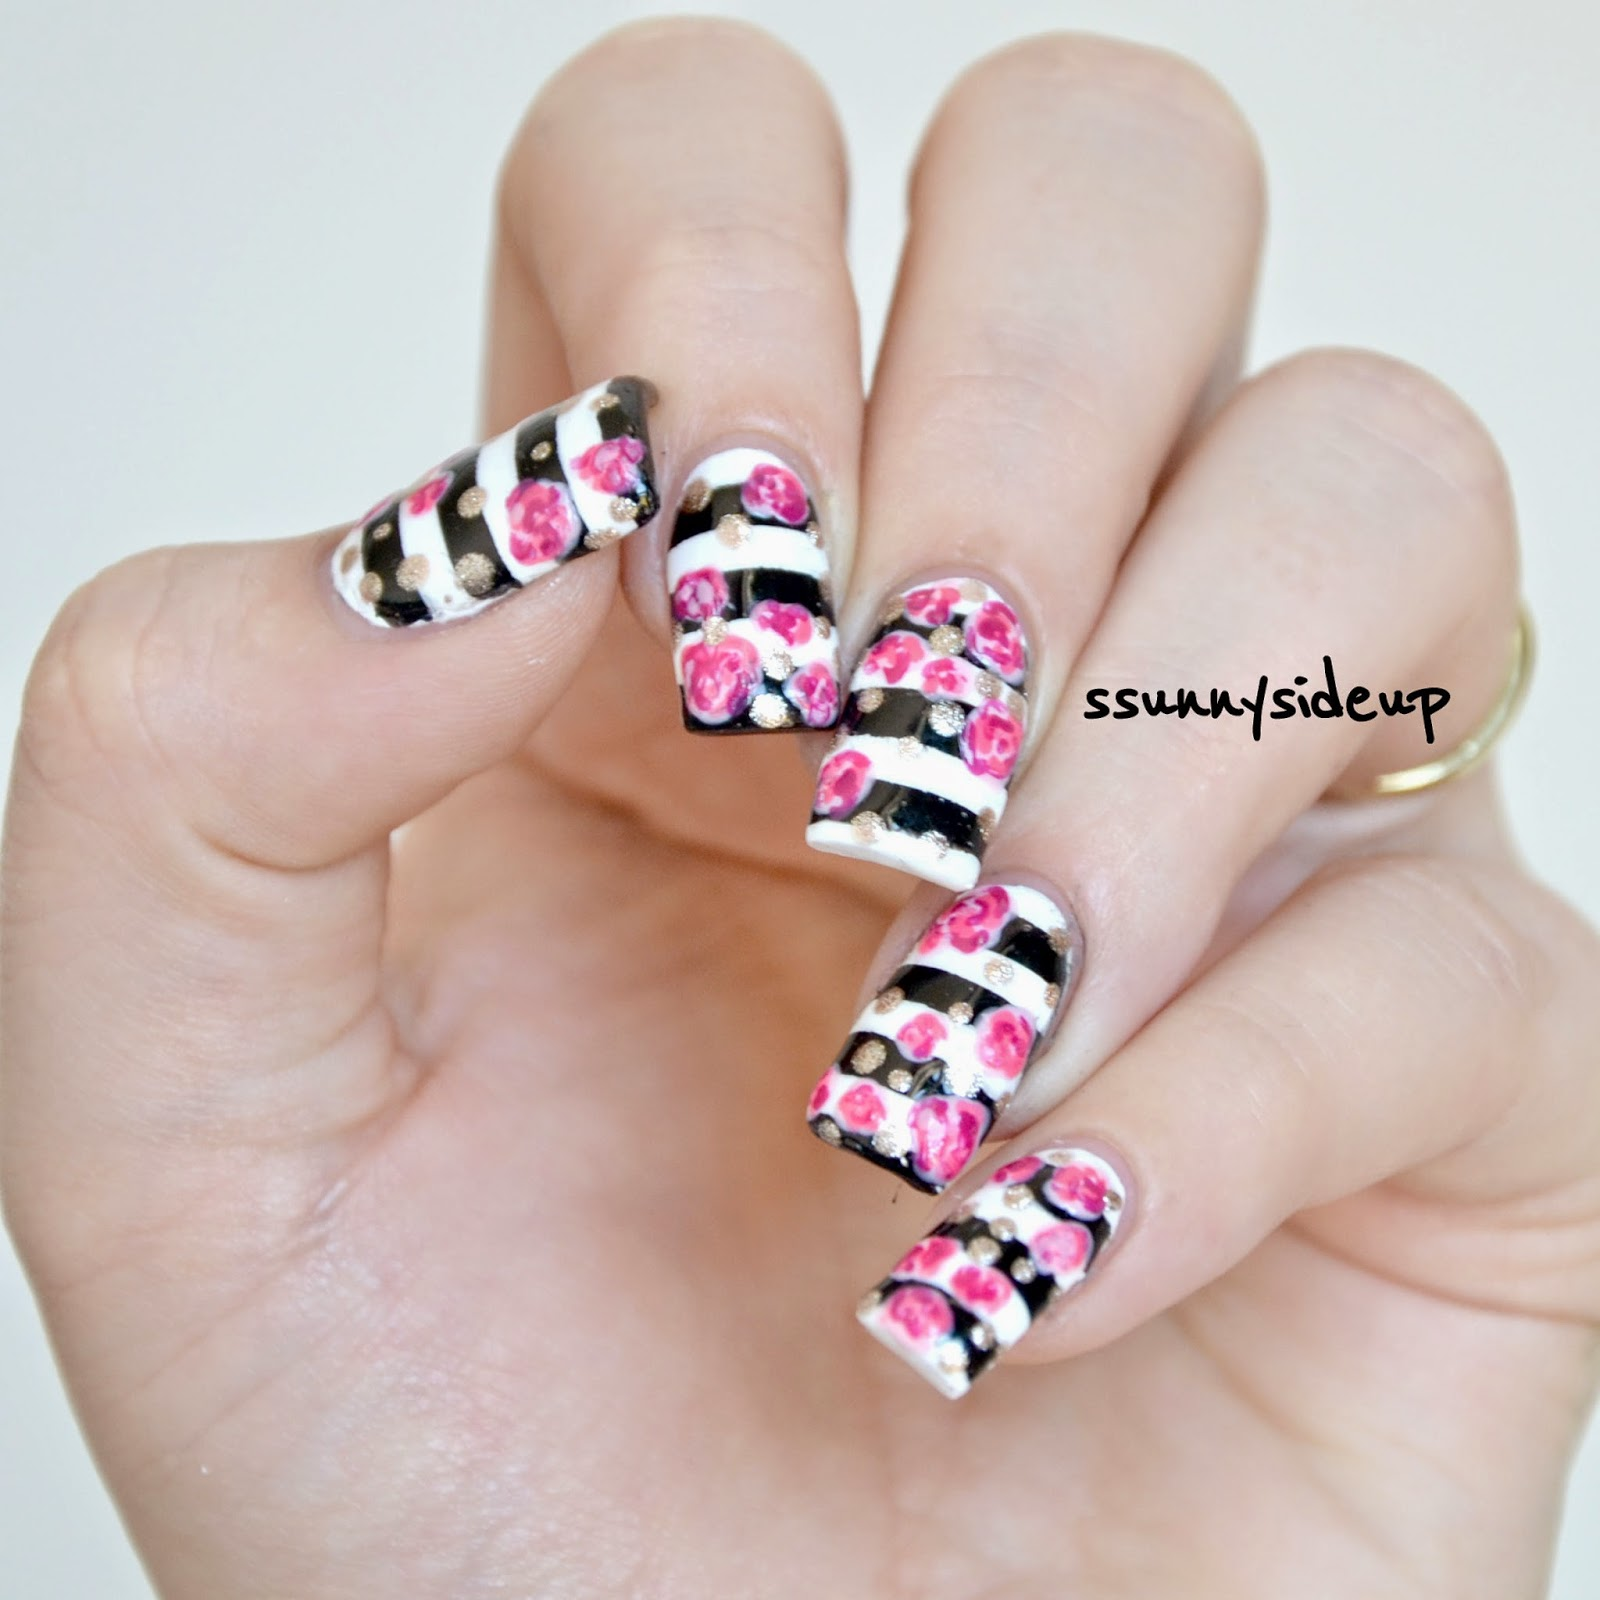 ssunnysideup: Nails with black and white stripes and pink flowers